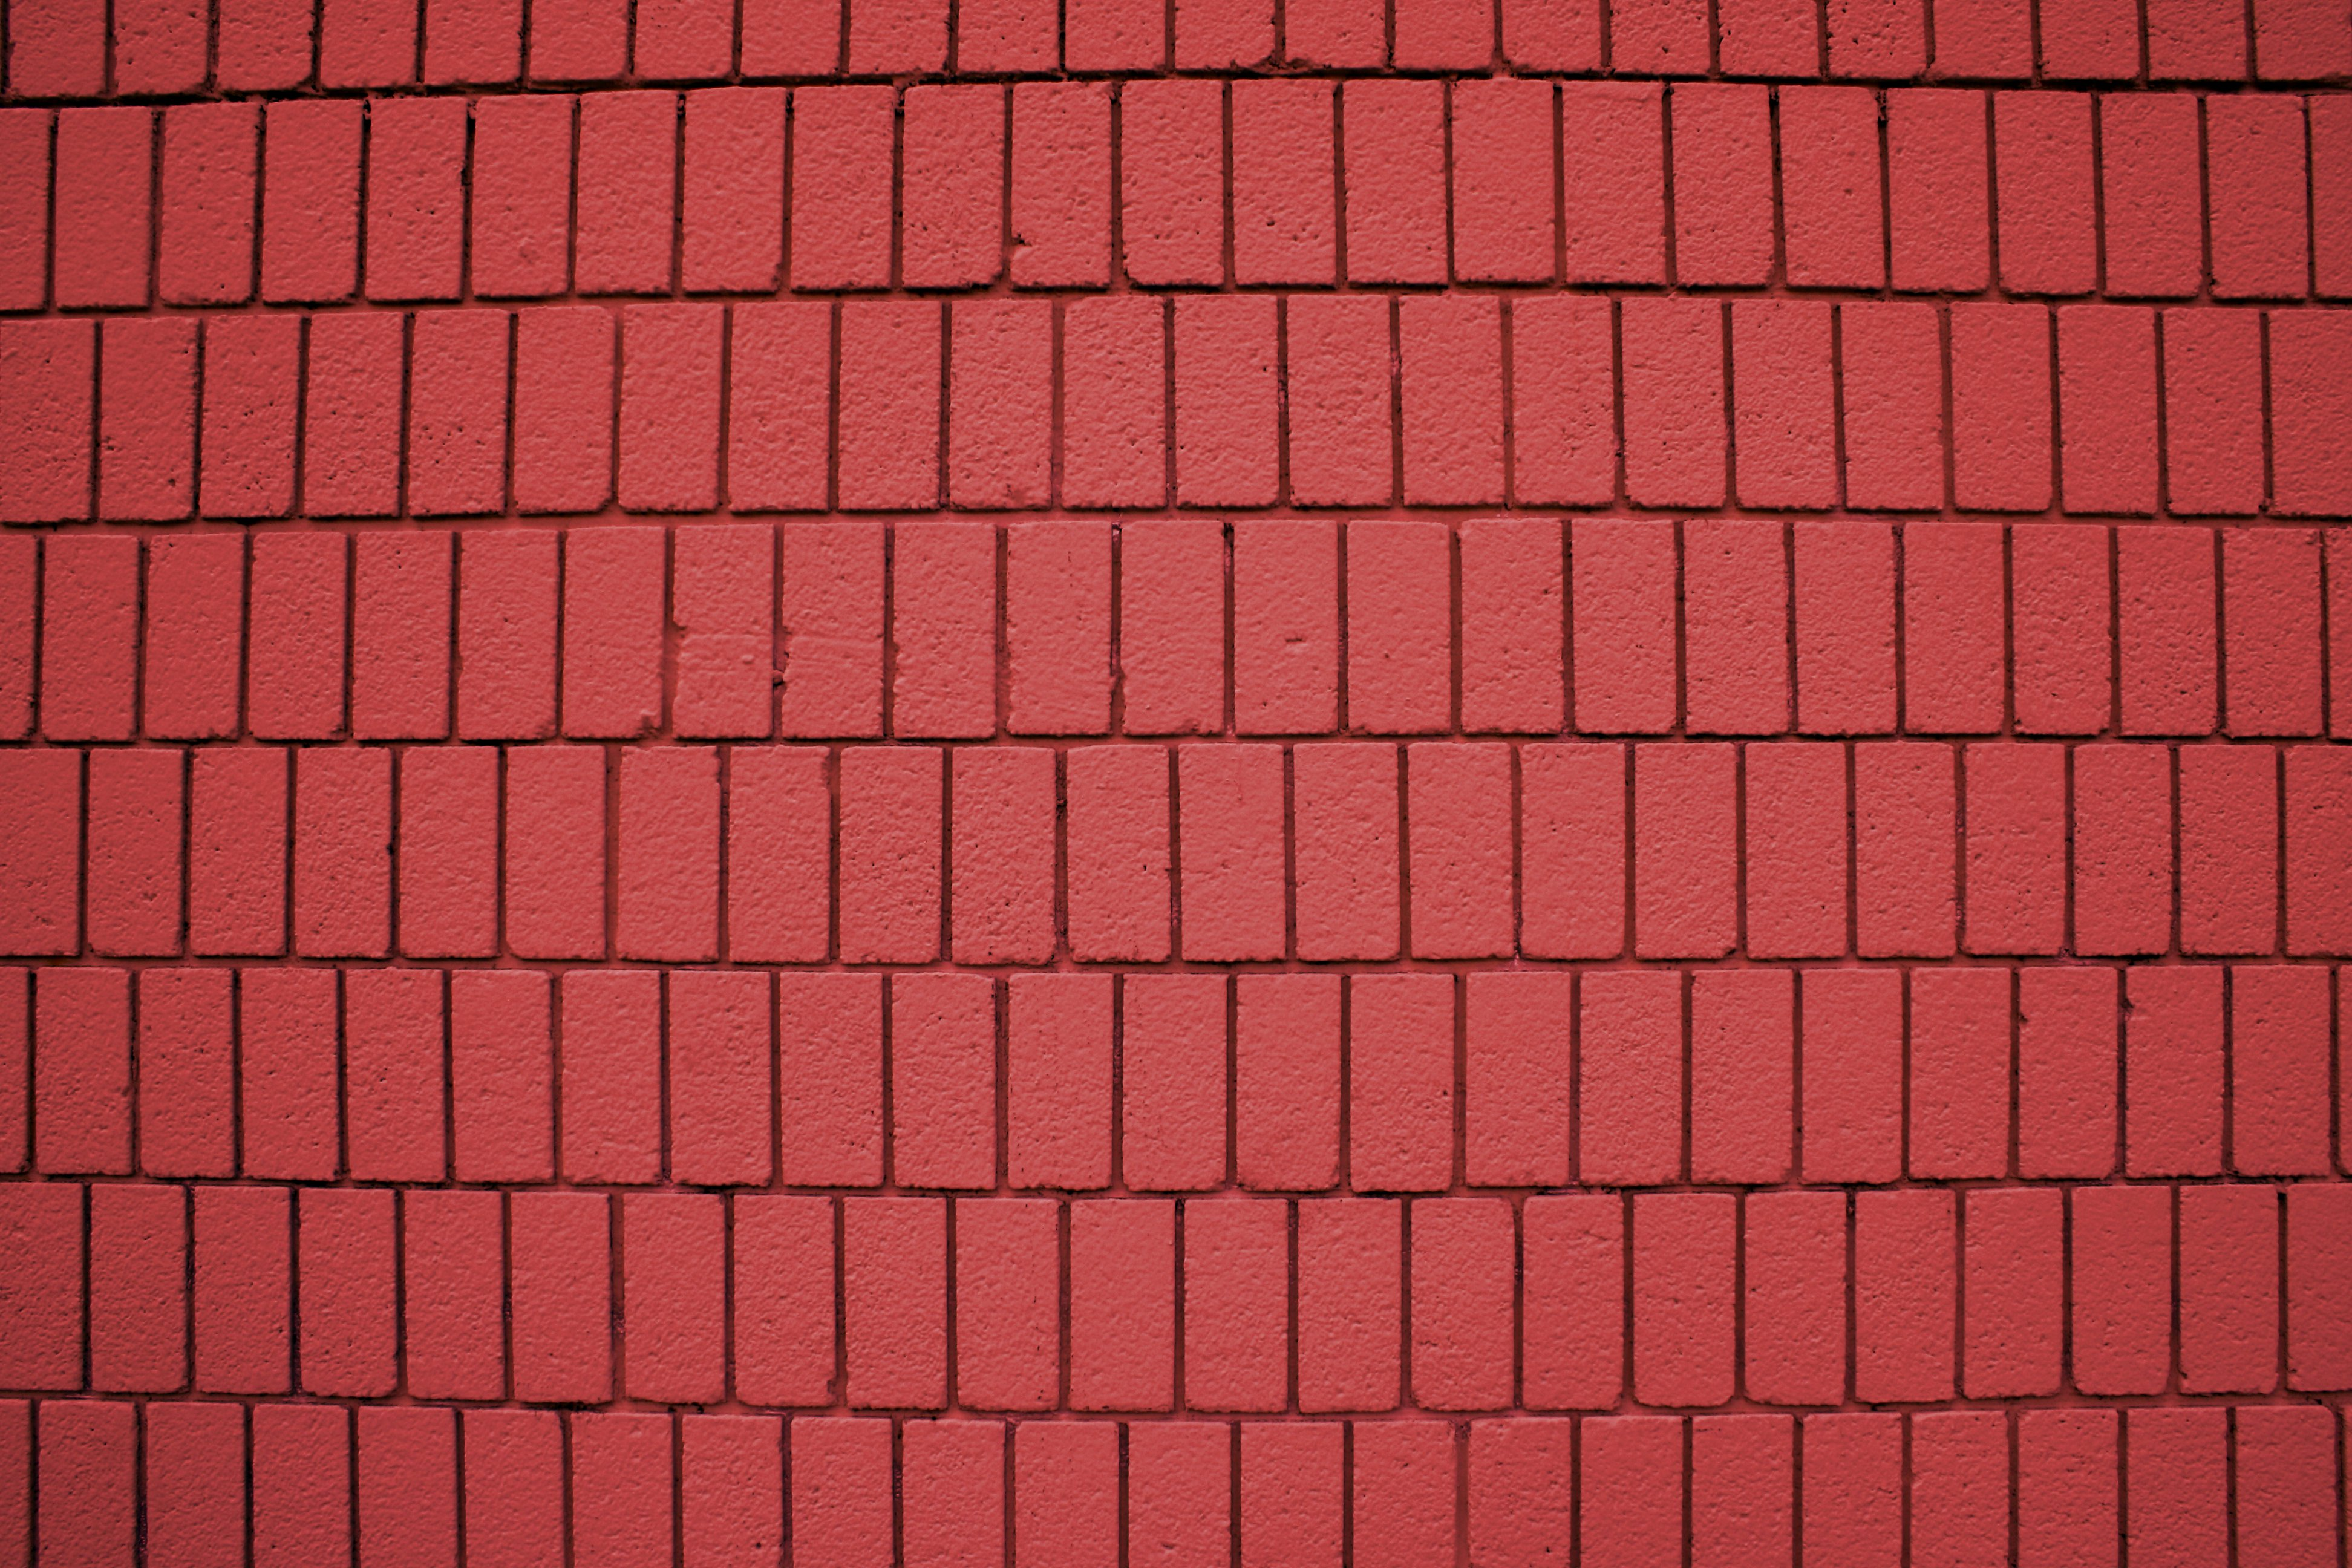 Brick Roof Texture red painted brick wall texture with vertical bricks picture | free